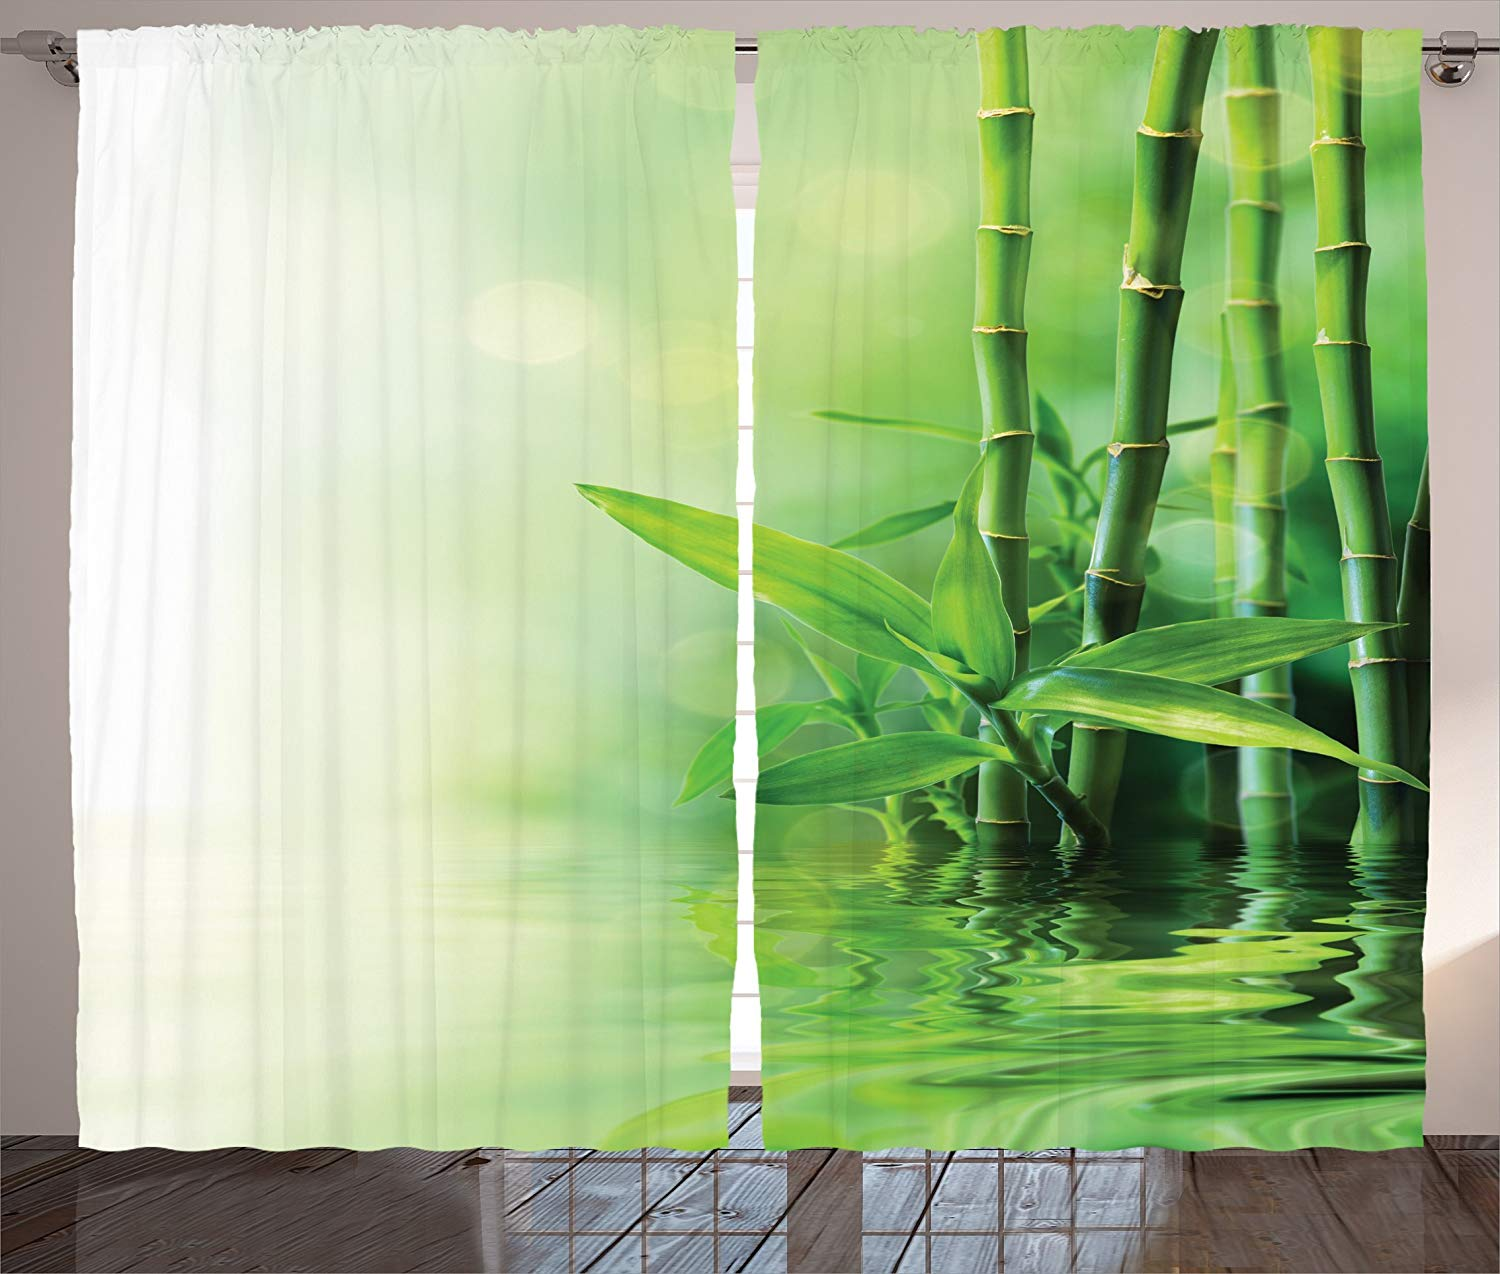 US $13.51 15% OFF|Asian Decor Curtains Bamboo Stalks Reflection On Water  Blurs Freshness Japanese Decorative Zen Spa Living Room Bedroom Decor-in ...